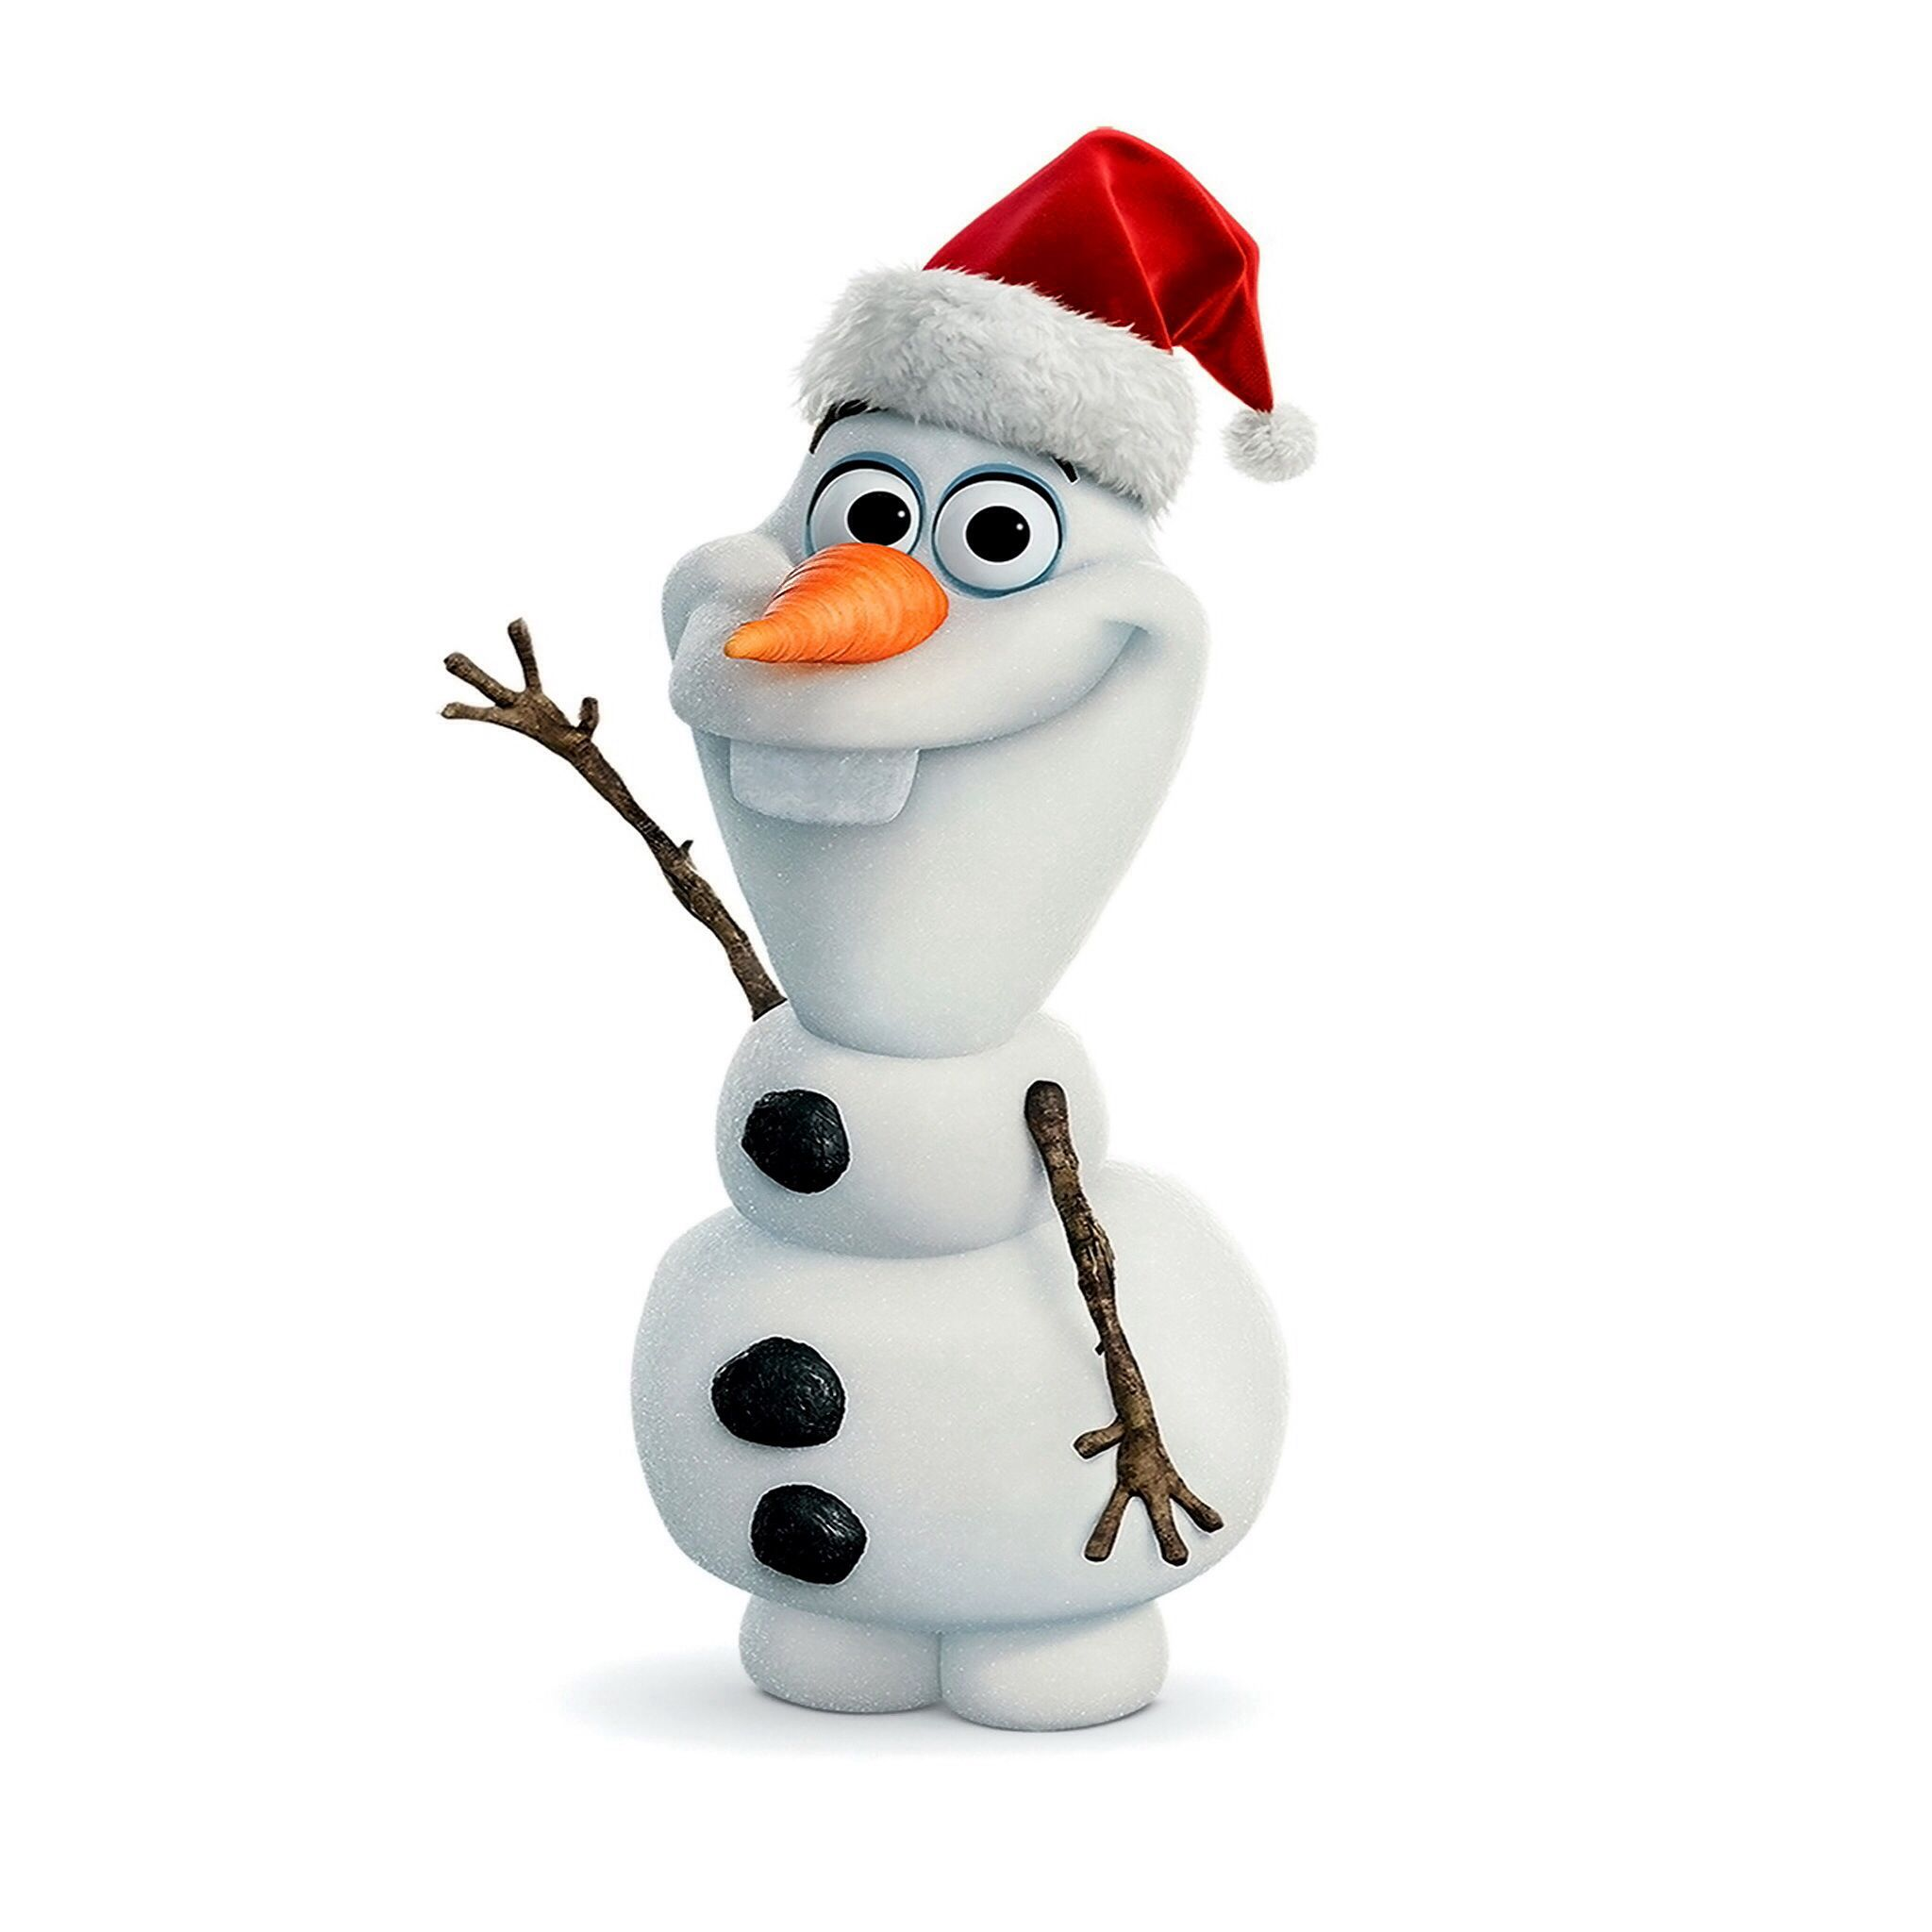 Olaf - Frozen | Olaf\'s World!!! | Pinterest | Olaf frozen, Olaf and ...